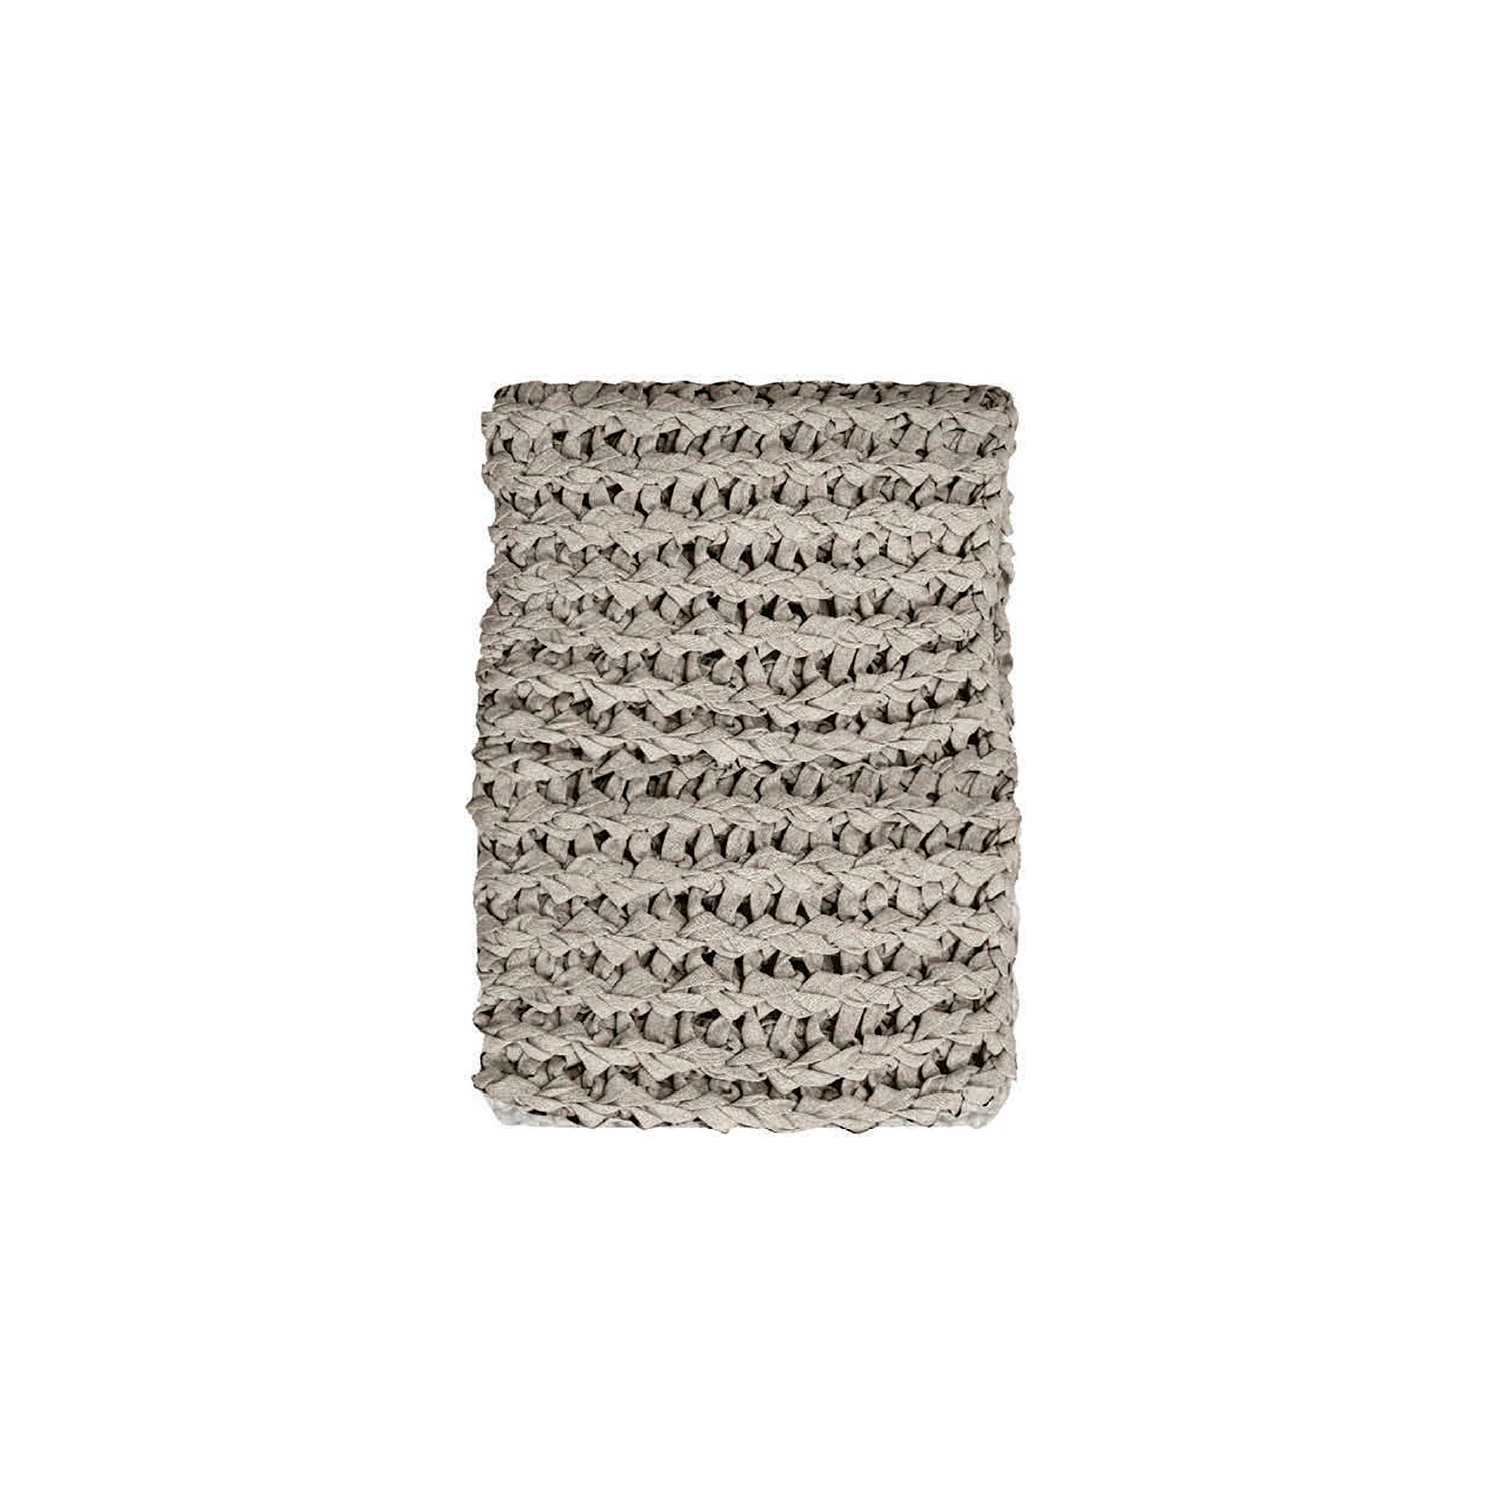 Stockholm Knitted Cotton Throw - The Stockholm Line is carefully knitted within a trained community of women that found in their craft a way to provide for their families, each one of these cushions and throws is unique.  Elisa Atheniense Home soft indoors collection is made with natural cotton fibres, eco-friendly, handwoven or elaborated using traditional hand-loom techniques. The use of organic materials brings softness and comfort to the space. This collection combines their mission for responsible sourcing and manufacturing.  Please enquire for more information and see colour chart for reference.   | Matter of Stuff